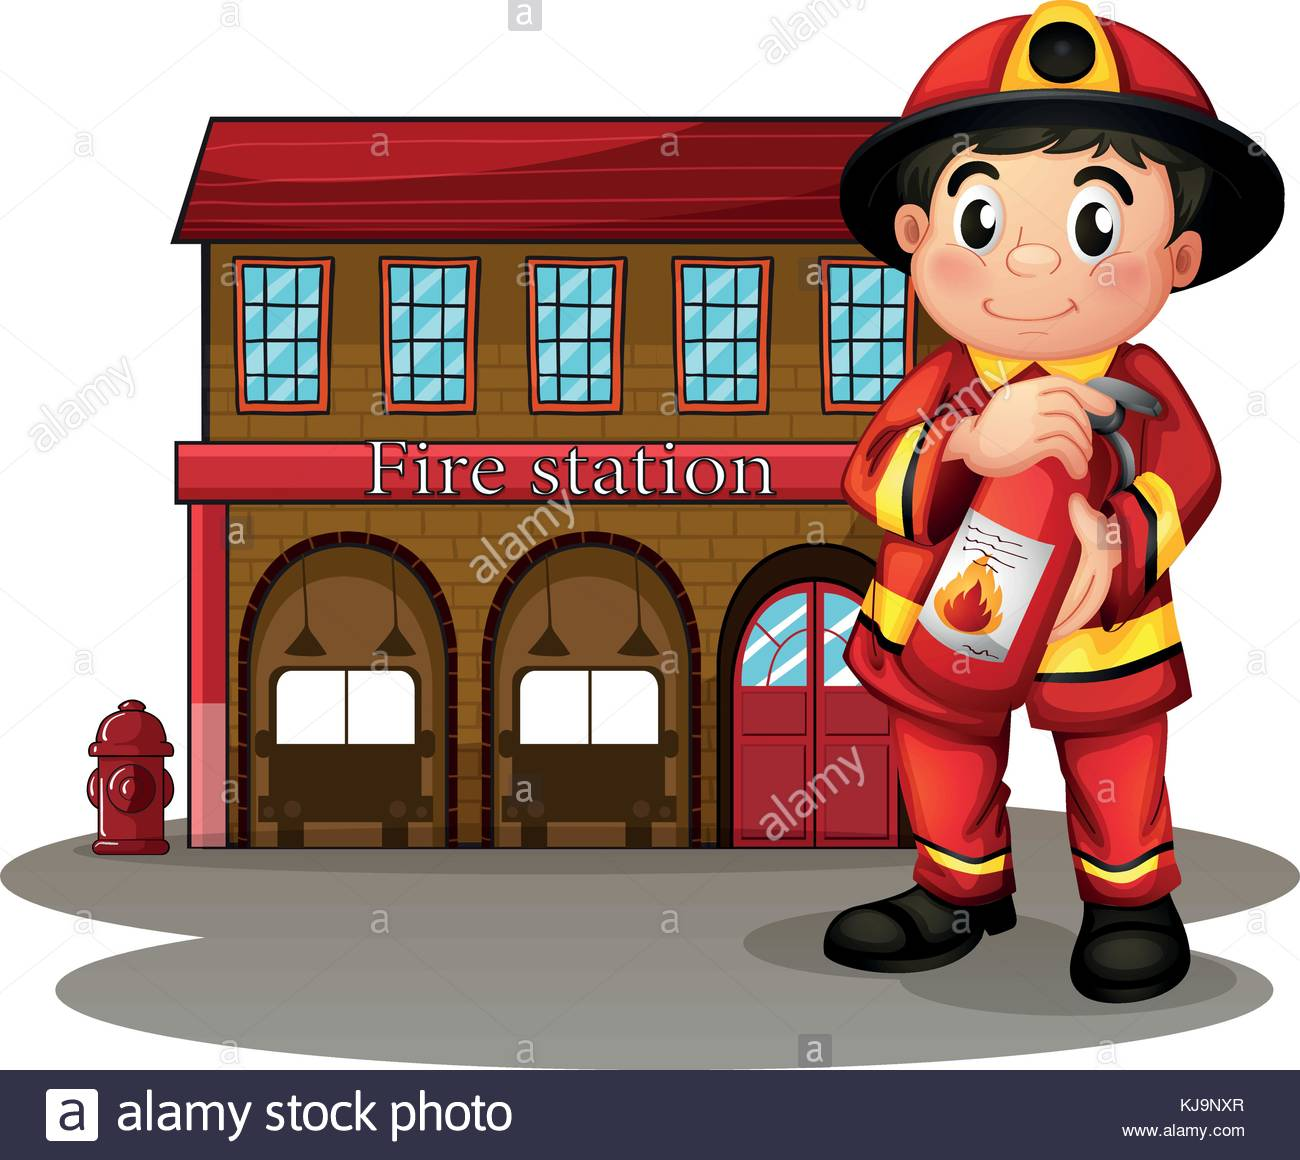 Illustration of a fireman in front of a fire station holding a fire.